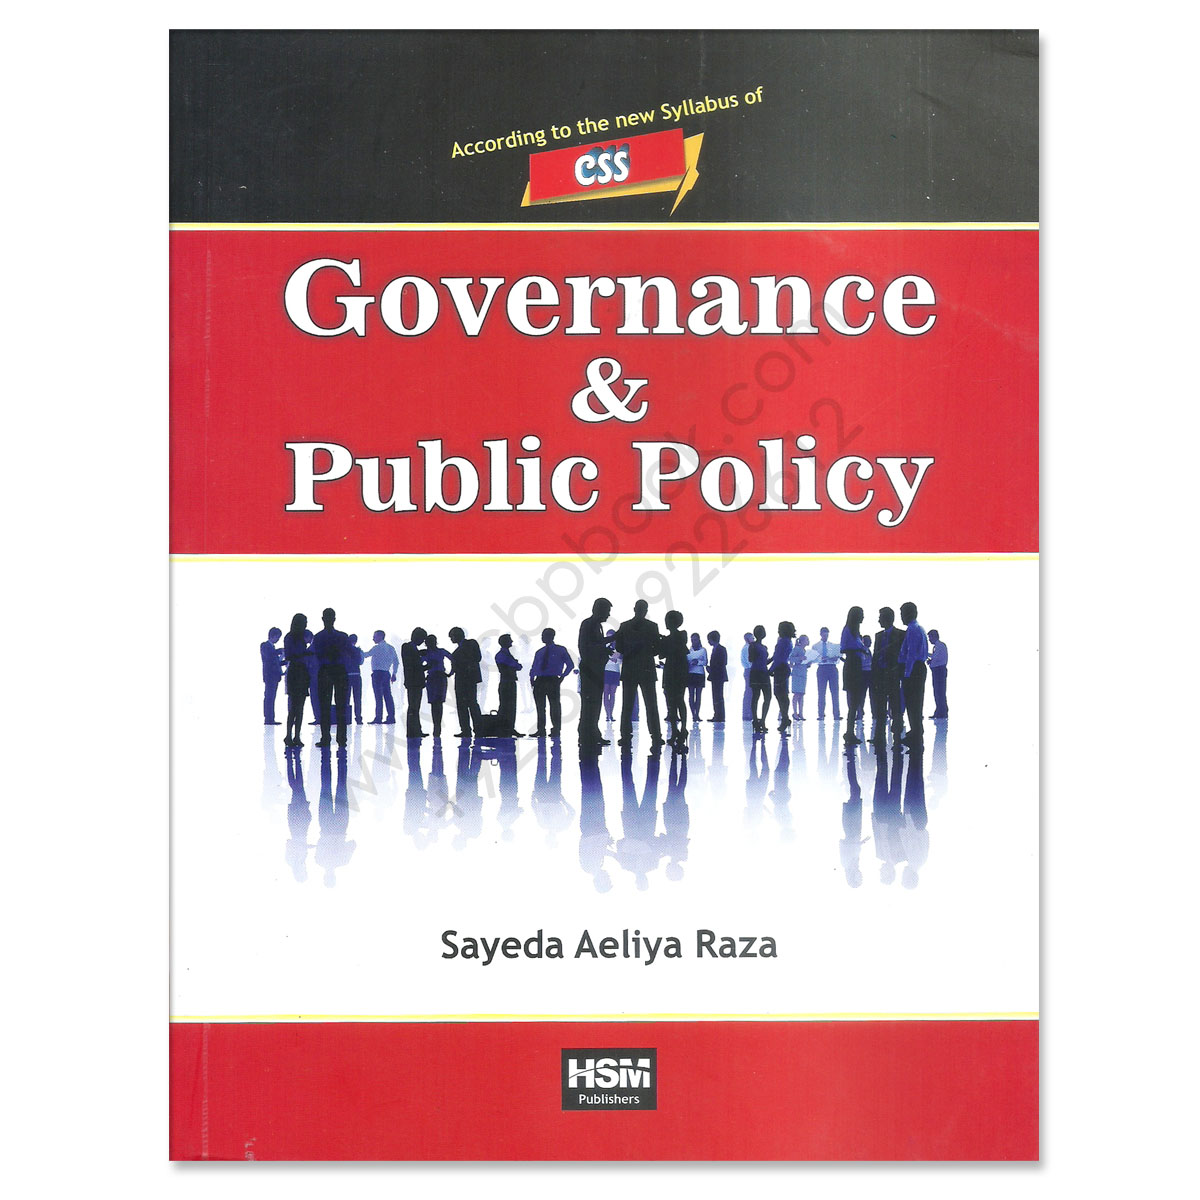 governance and public politics by sayeda aeliya raza hsm publishers